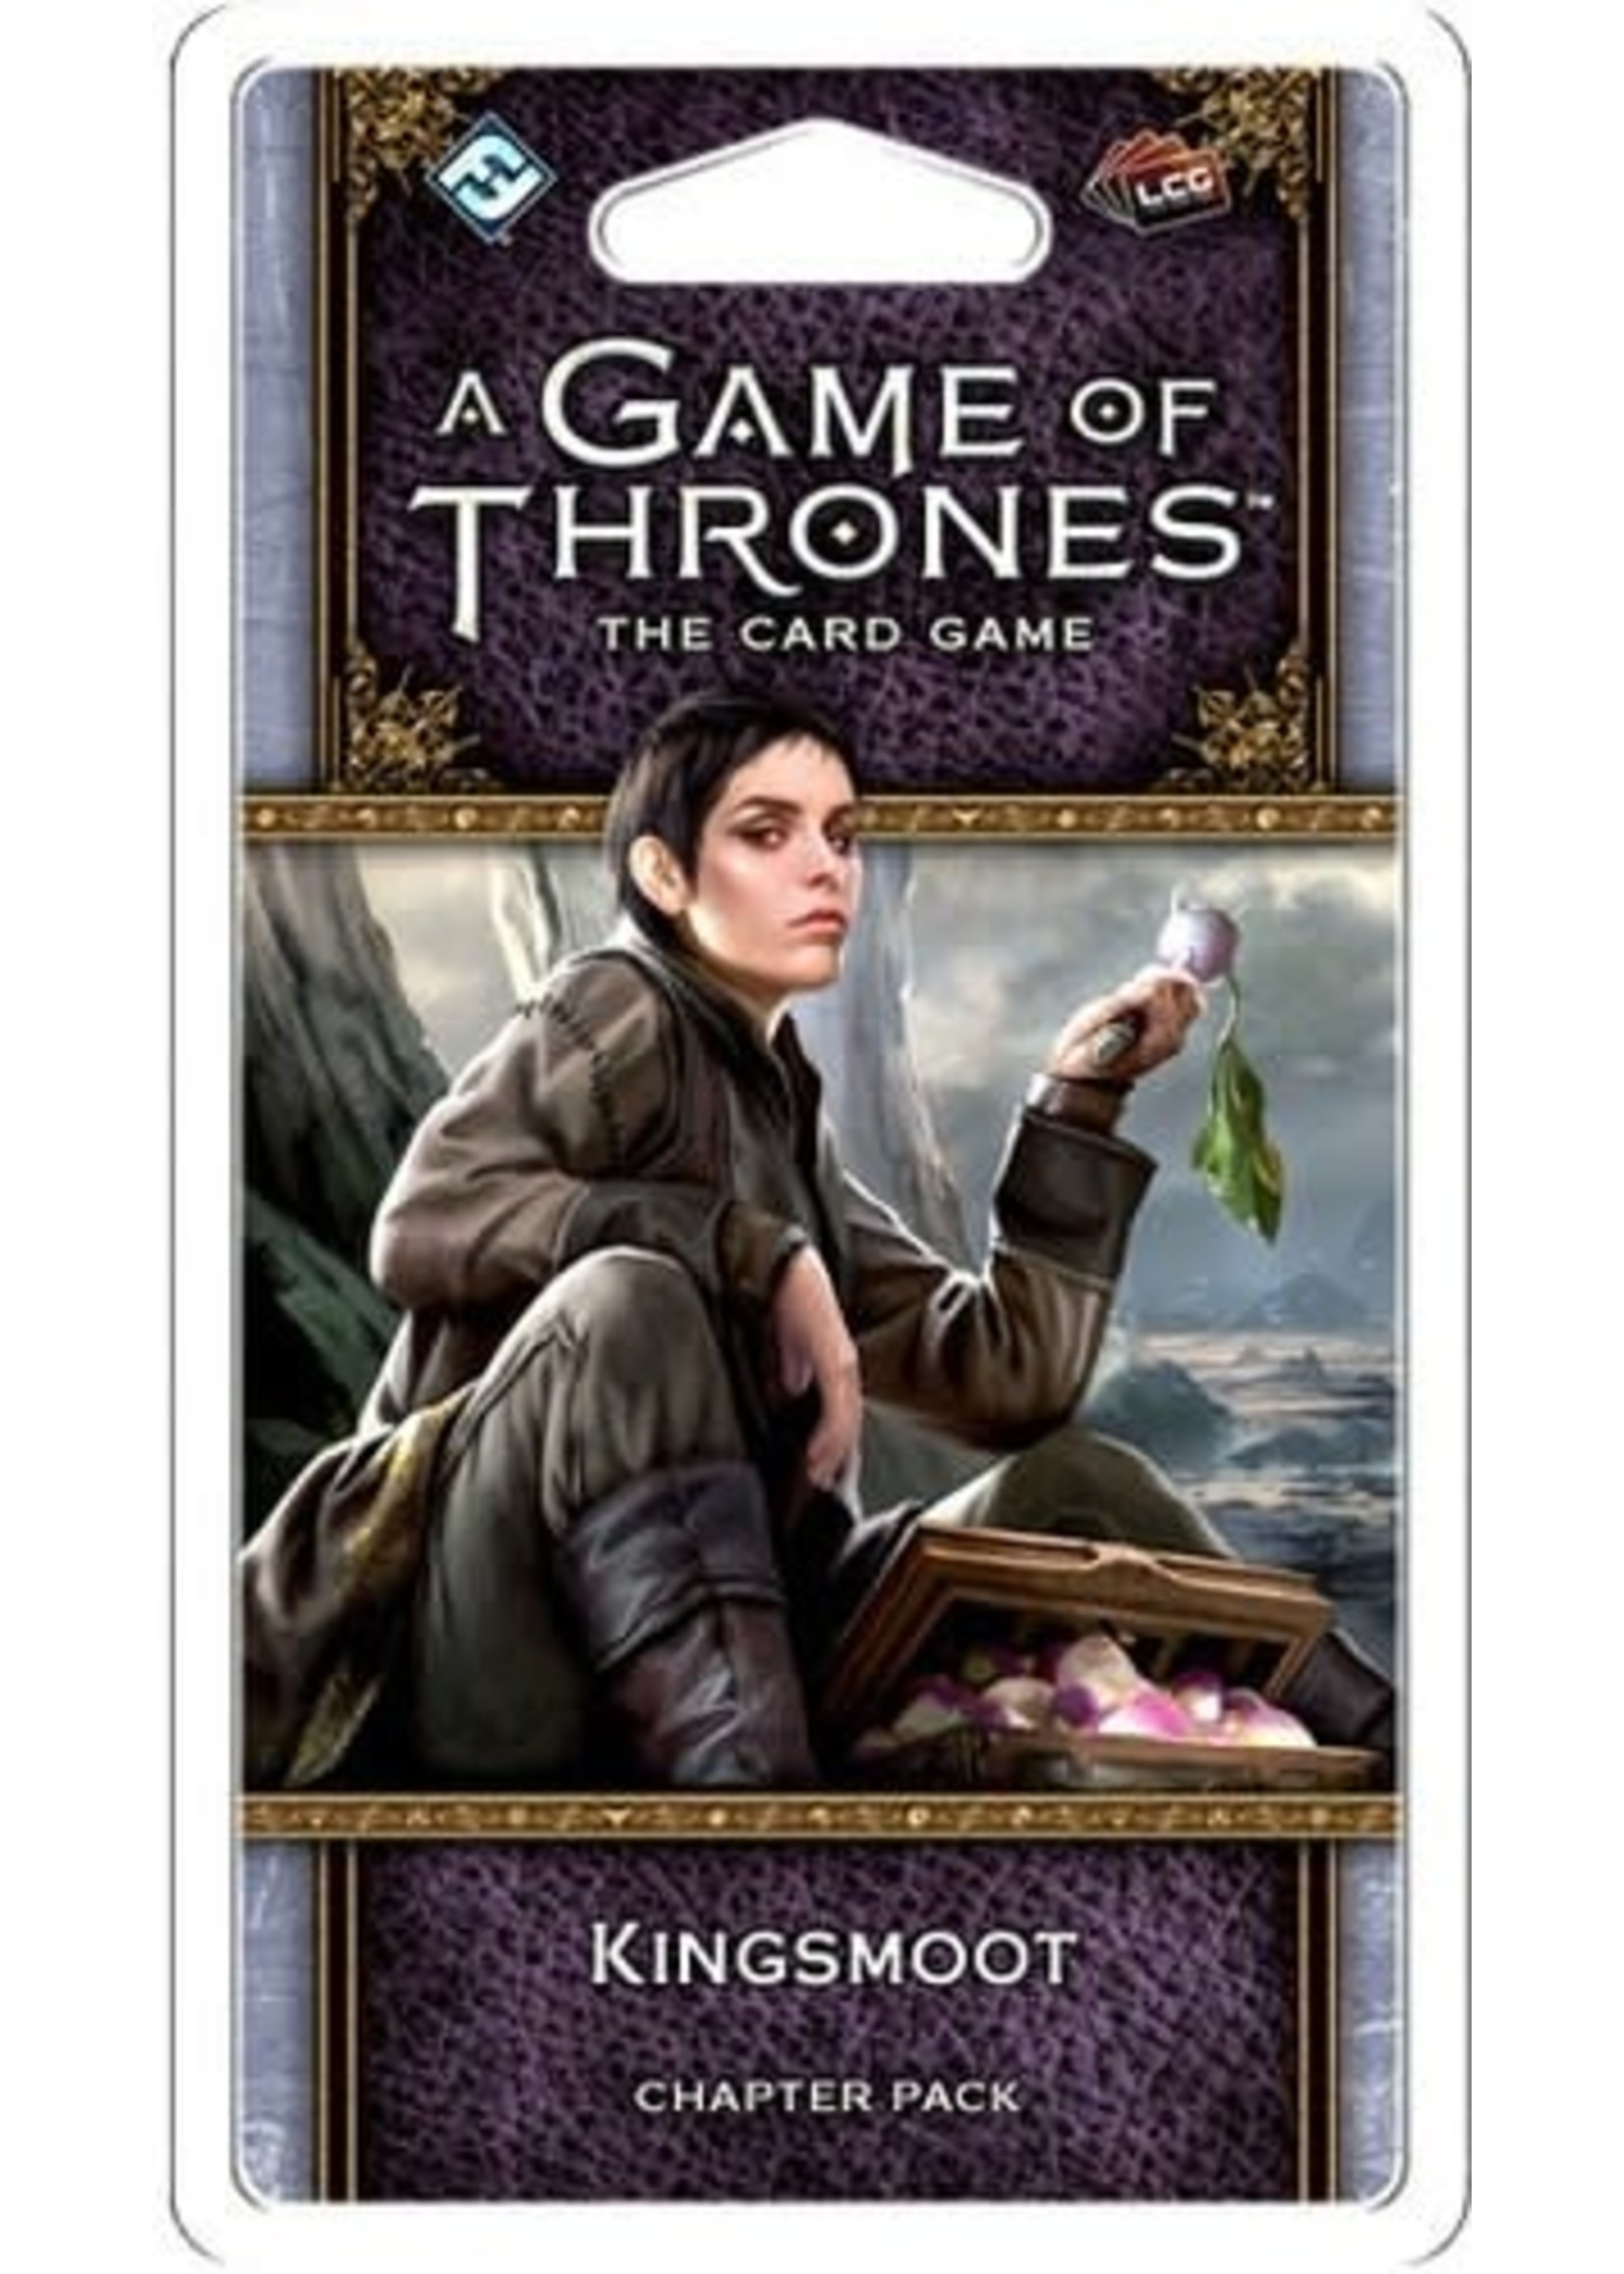 Game of Thrones LCG Kingsmoot Chapter Pack